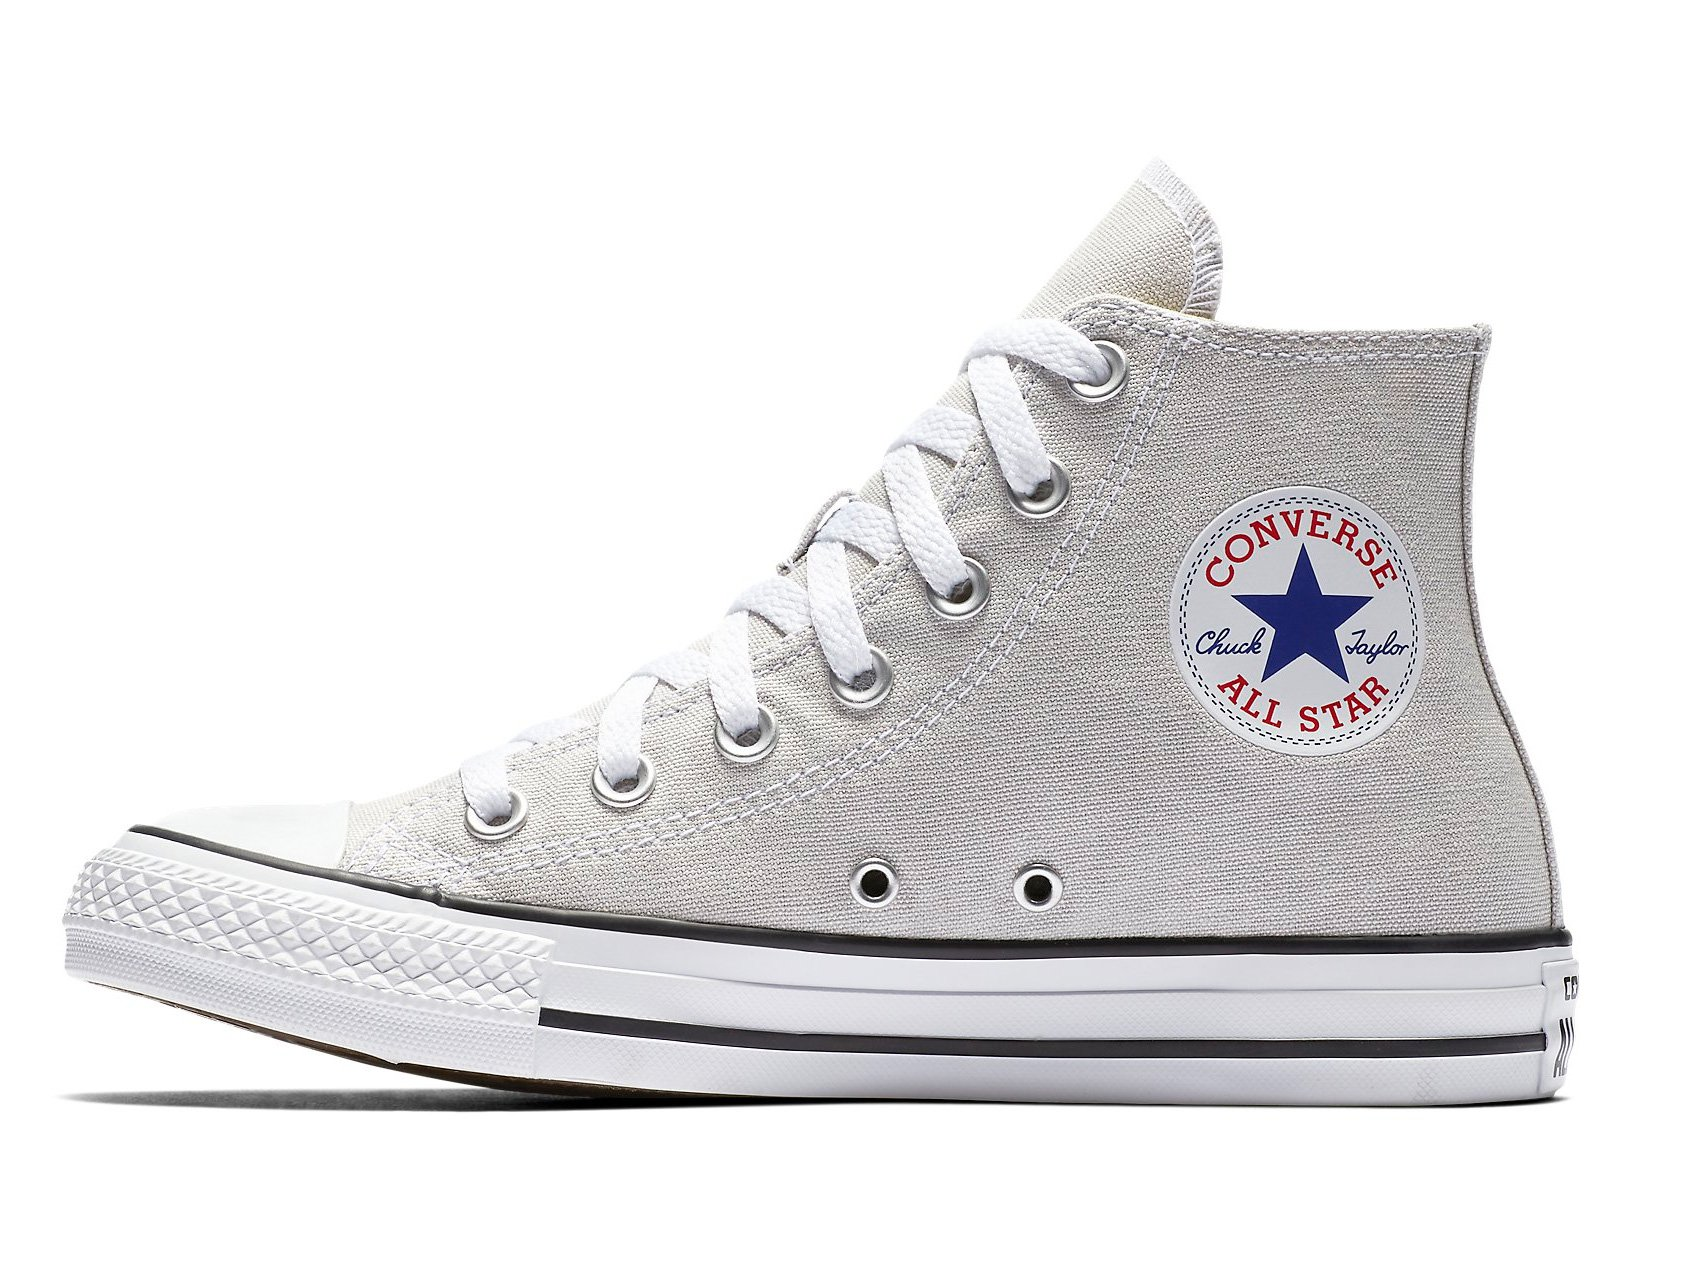 d716a6f209e4 Galleon - Converse Unisex Chuck Taylor All Star High Top Shoes - Pale  Putty